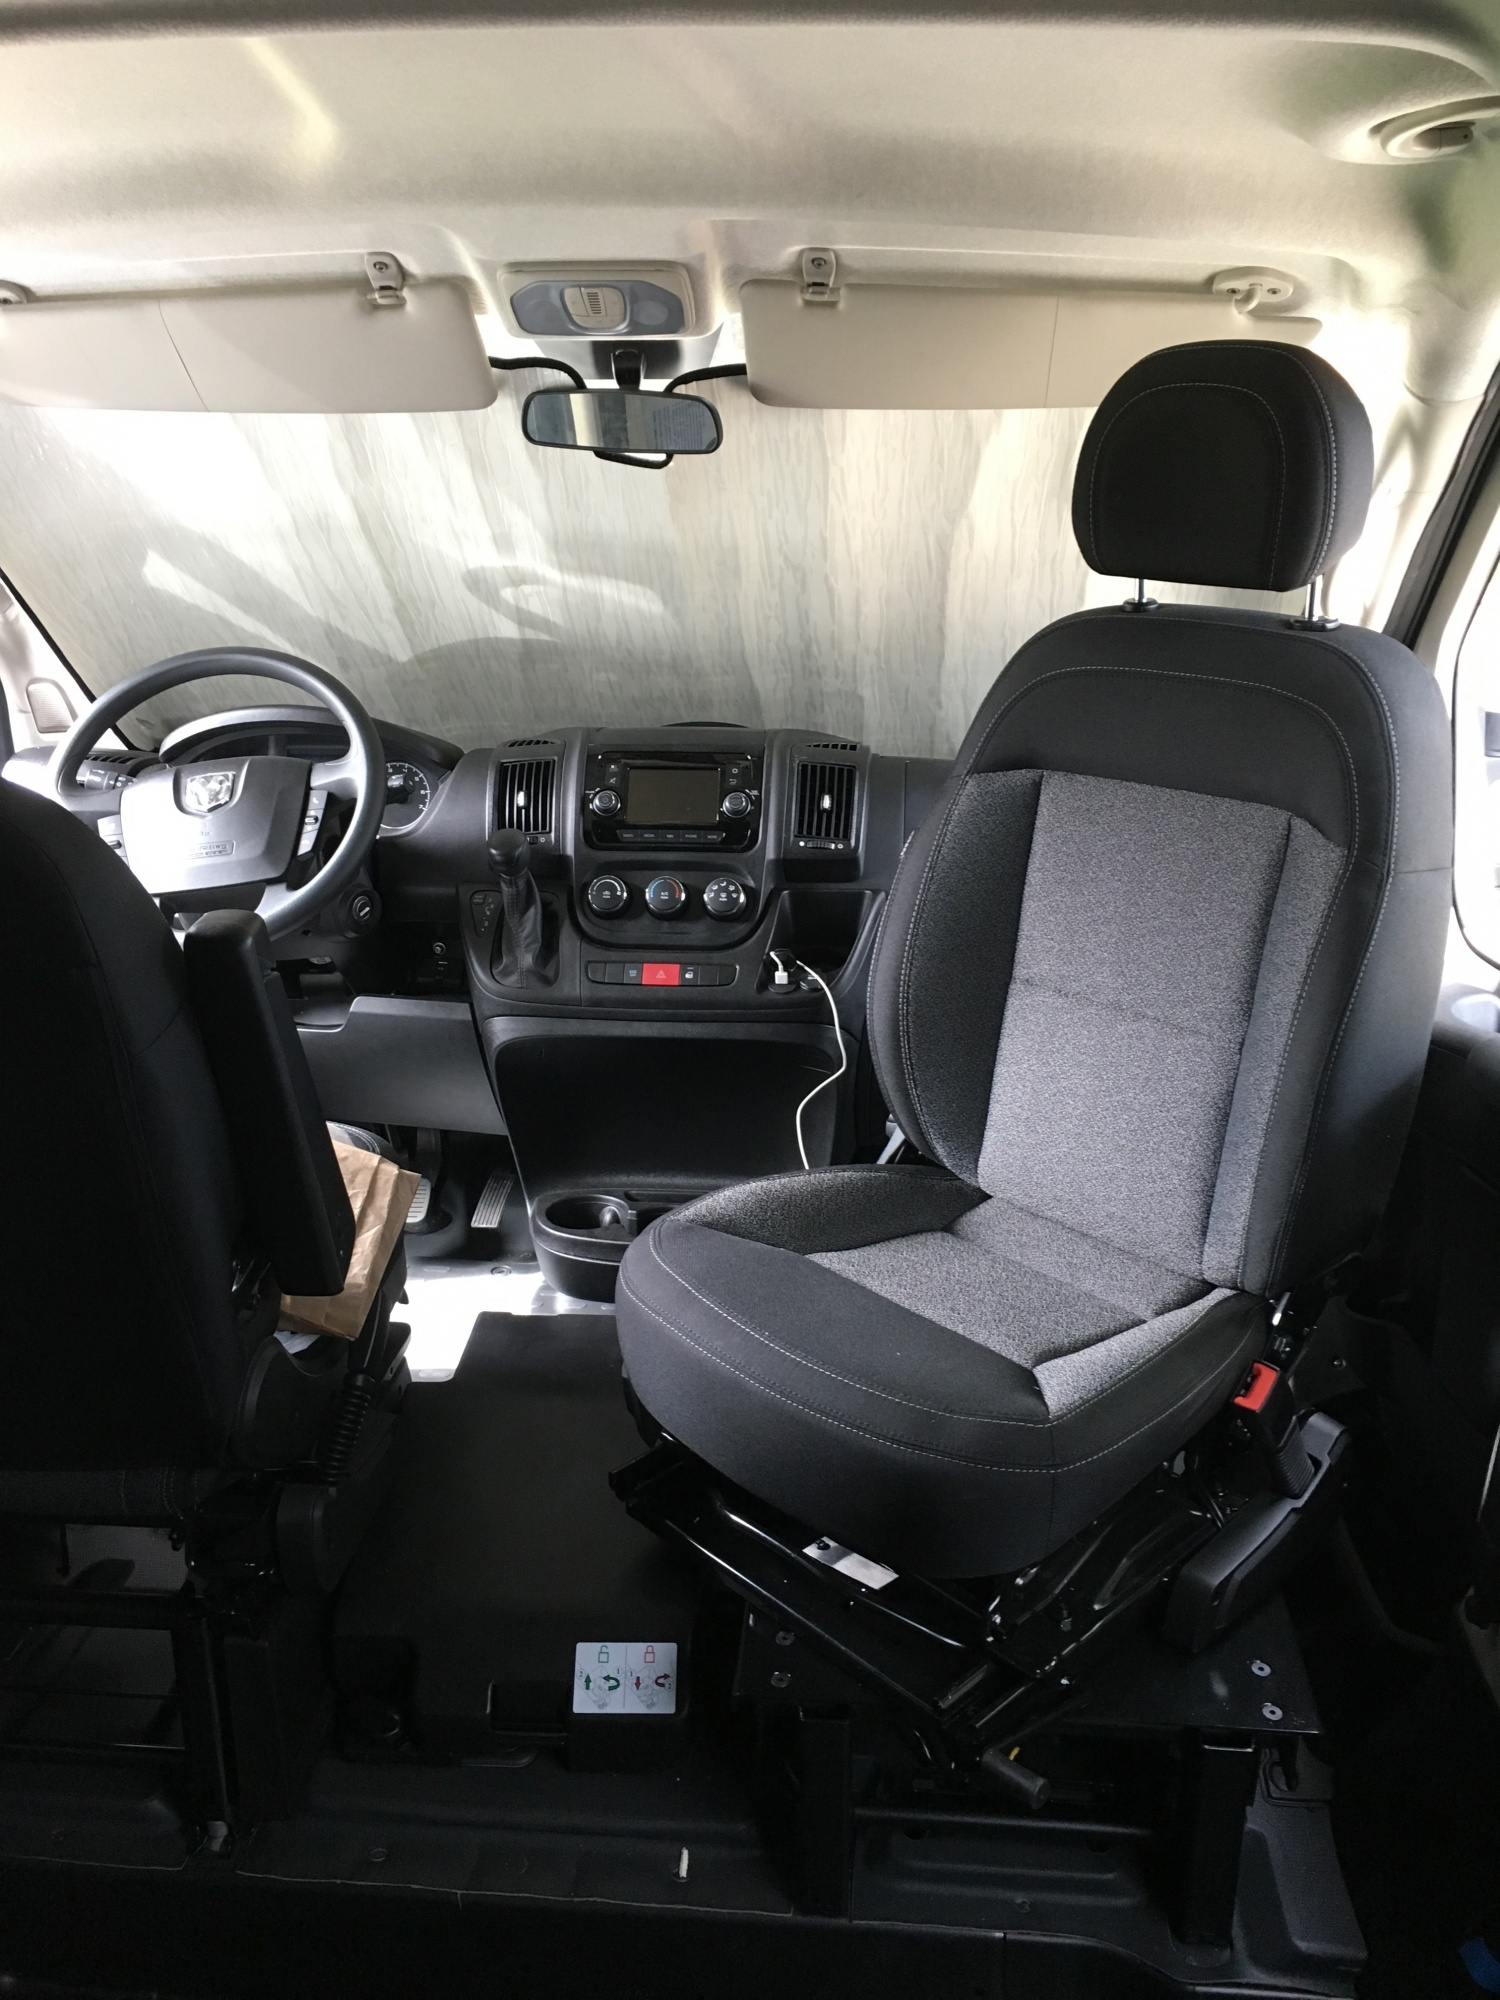 Passenger swivel and windshield cover